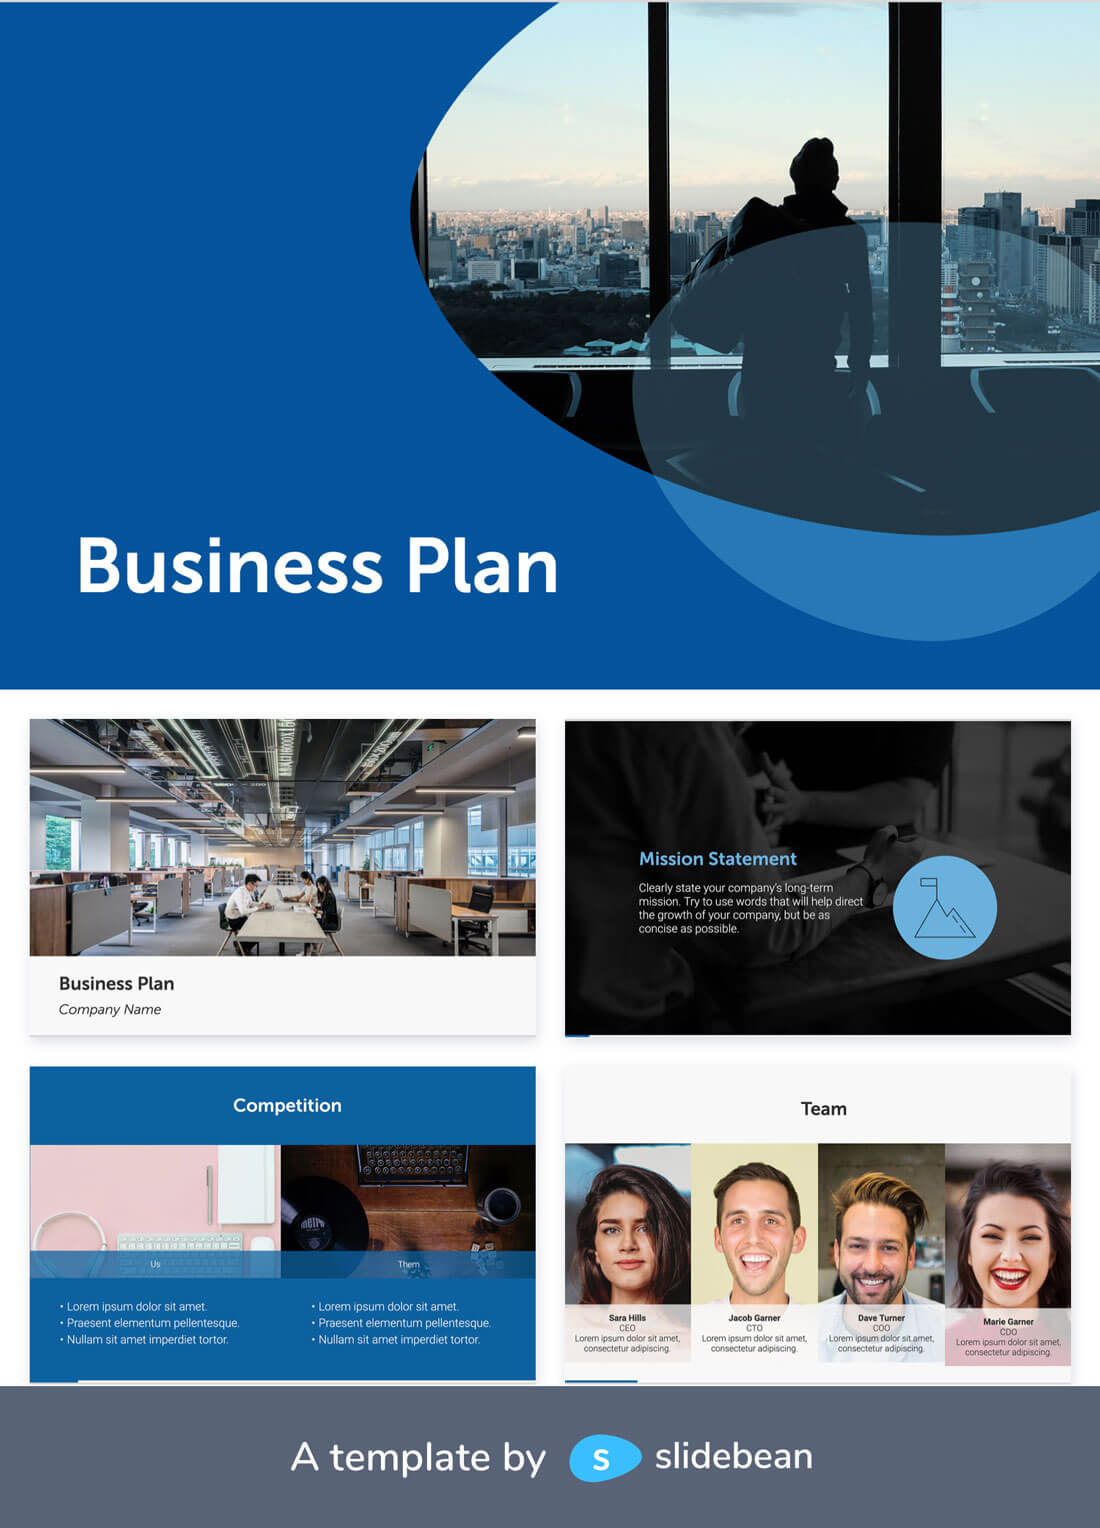 Image contains a business plan template